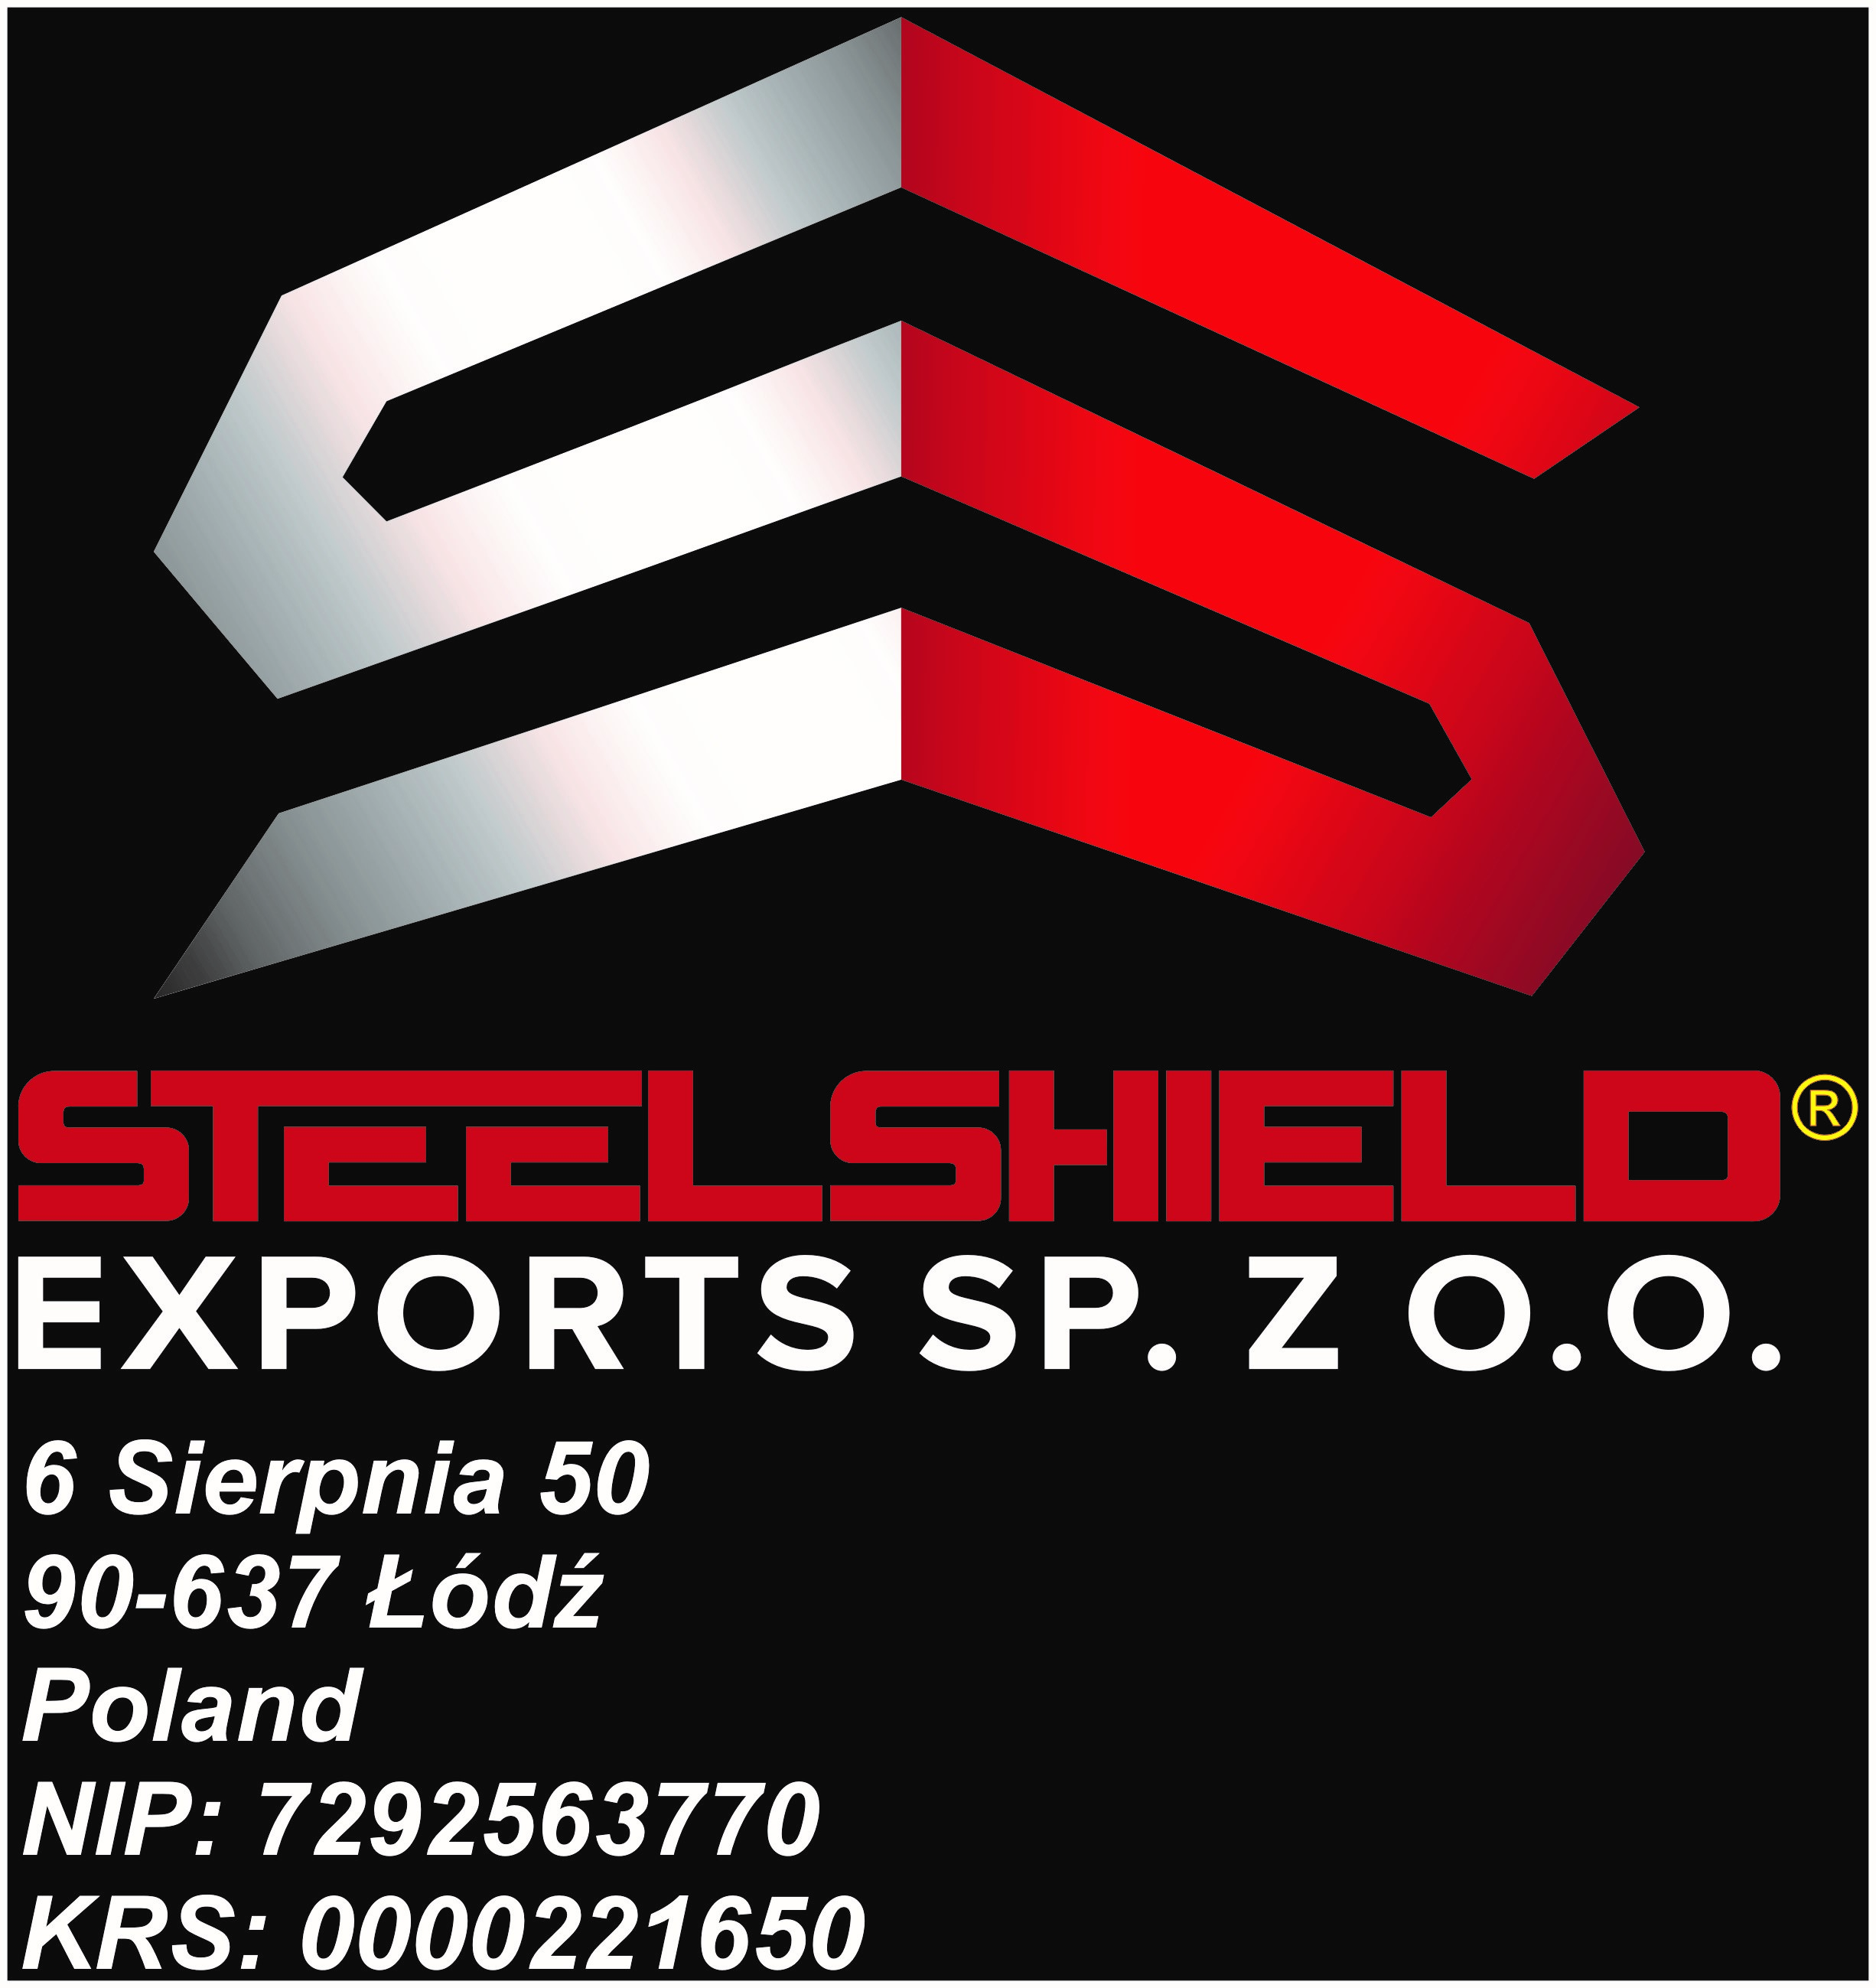 STEELSHIELD EXPORTS Sp. z o.o.